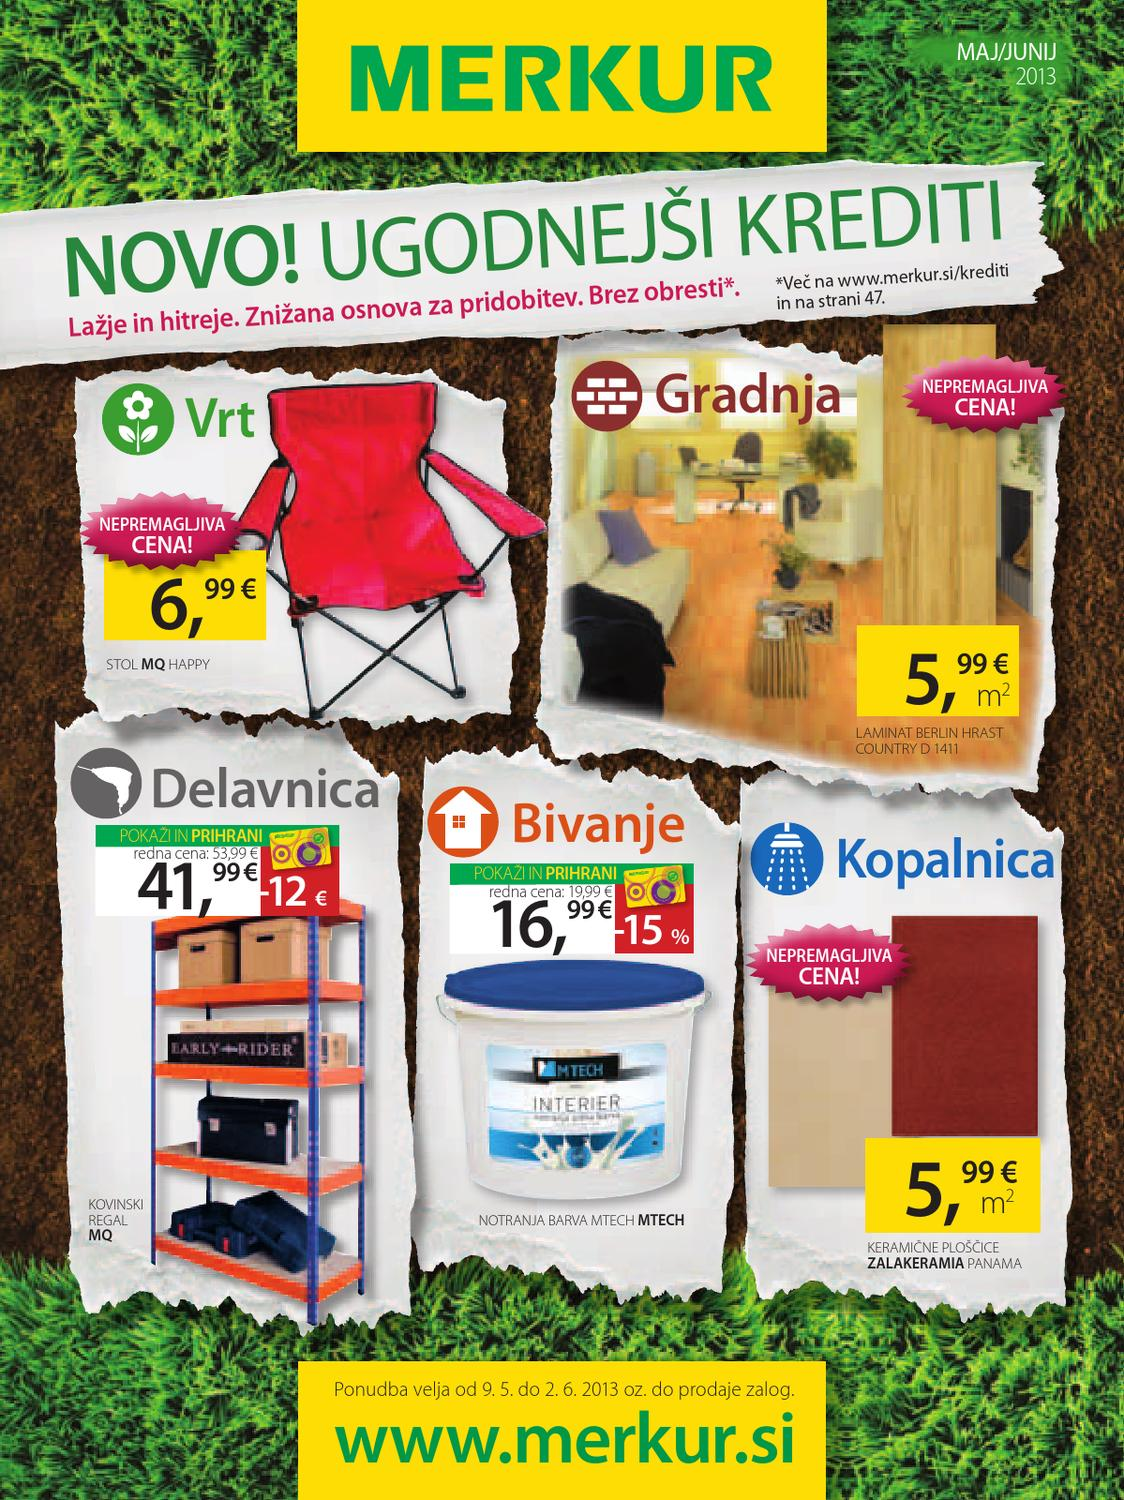 merkur katalog maj 2013 vrt gradnja delavnica bivanje. Black Bedroom Furniture Sets. Home Design Ideas